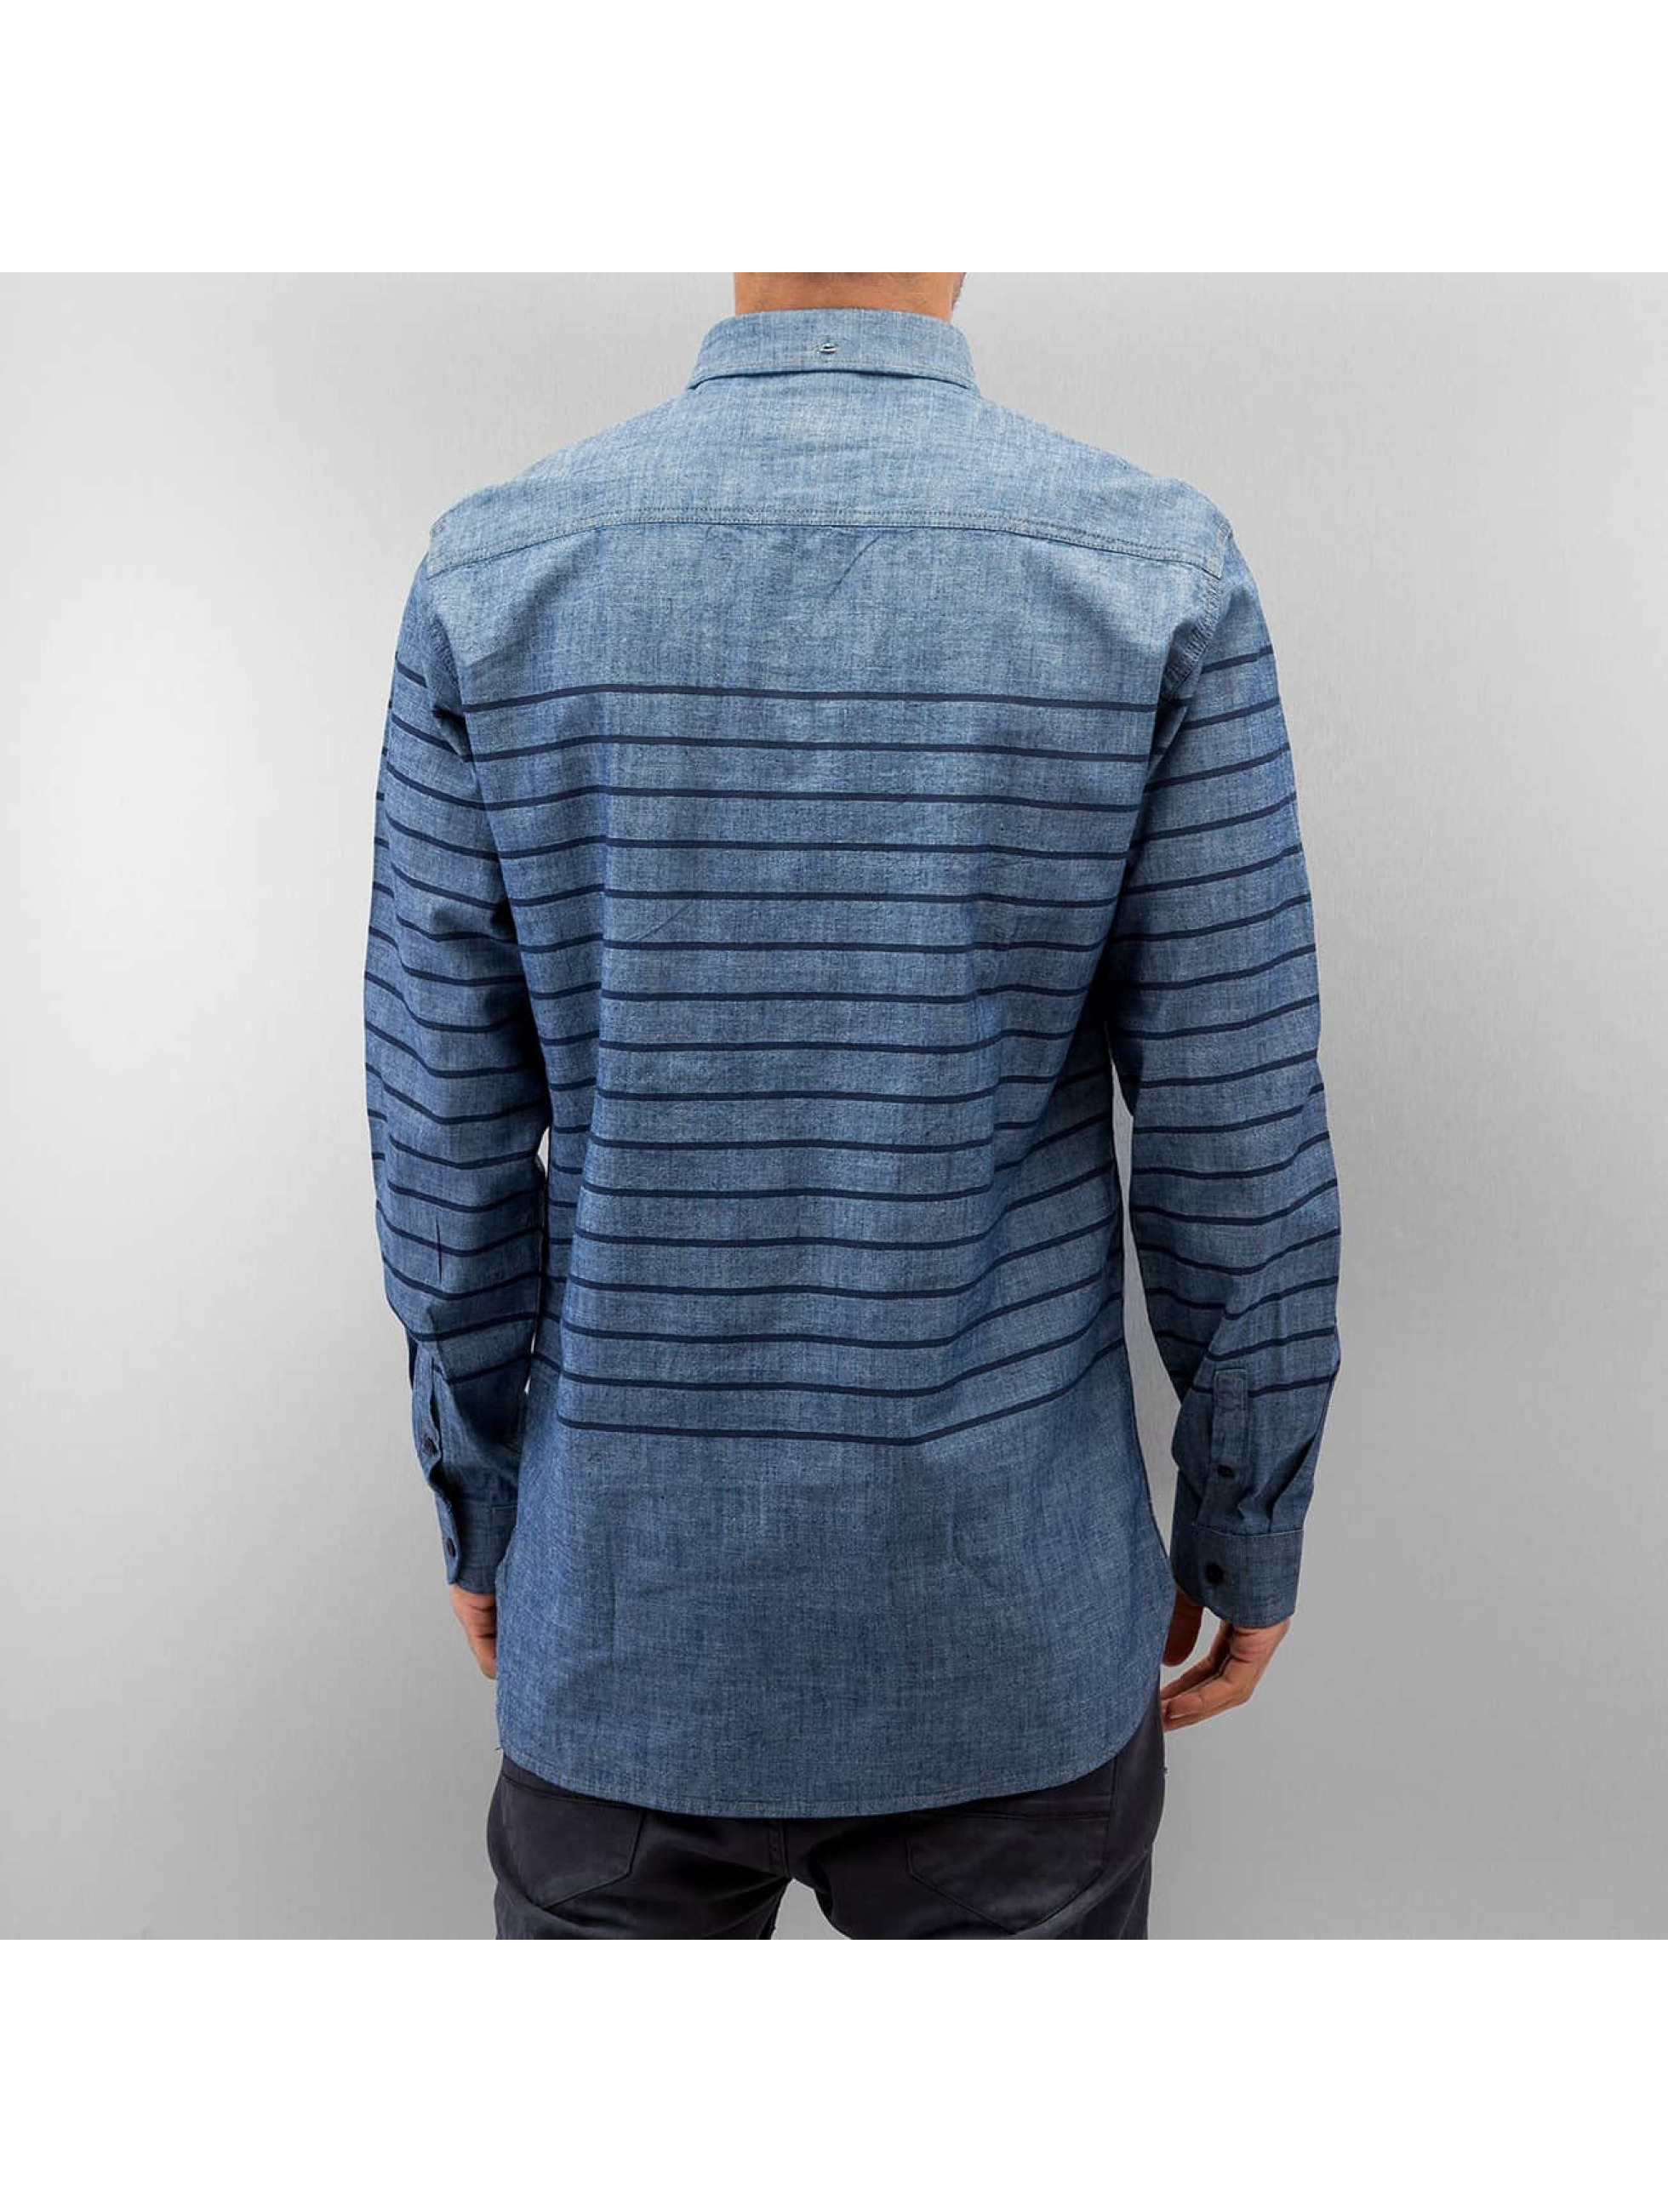 SHINE Original Hemd Striped Chambray blau